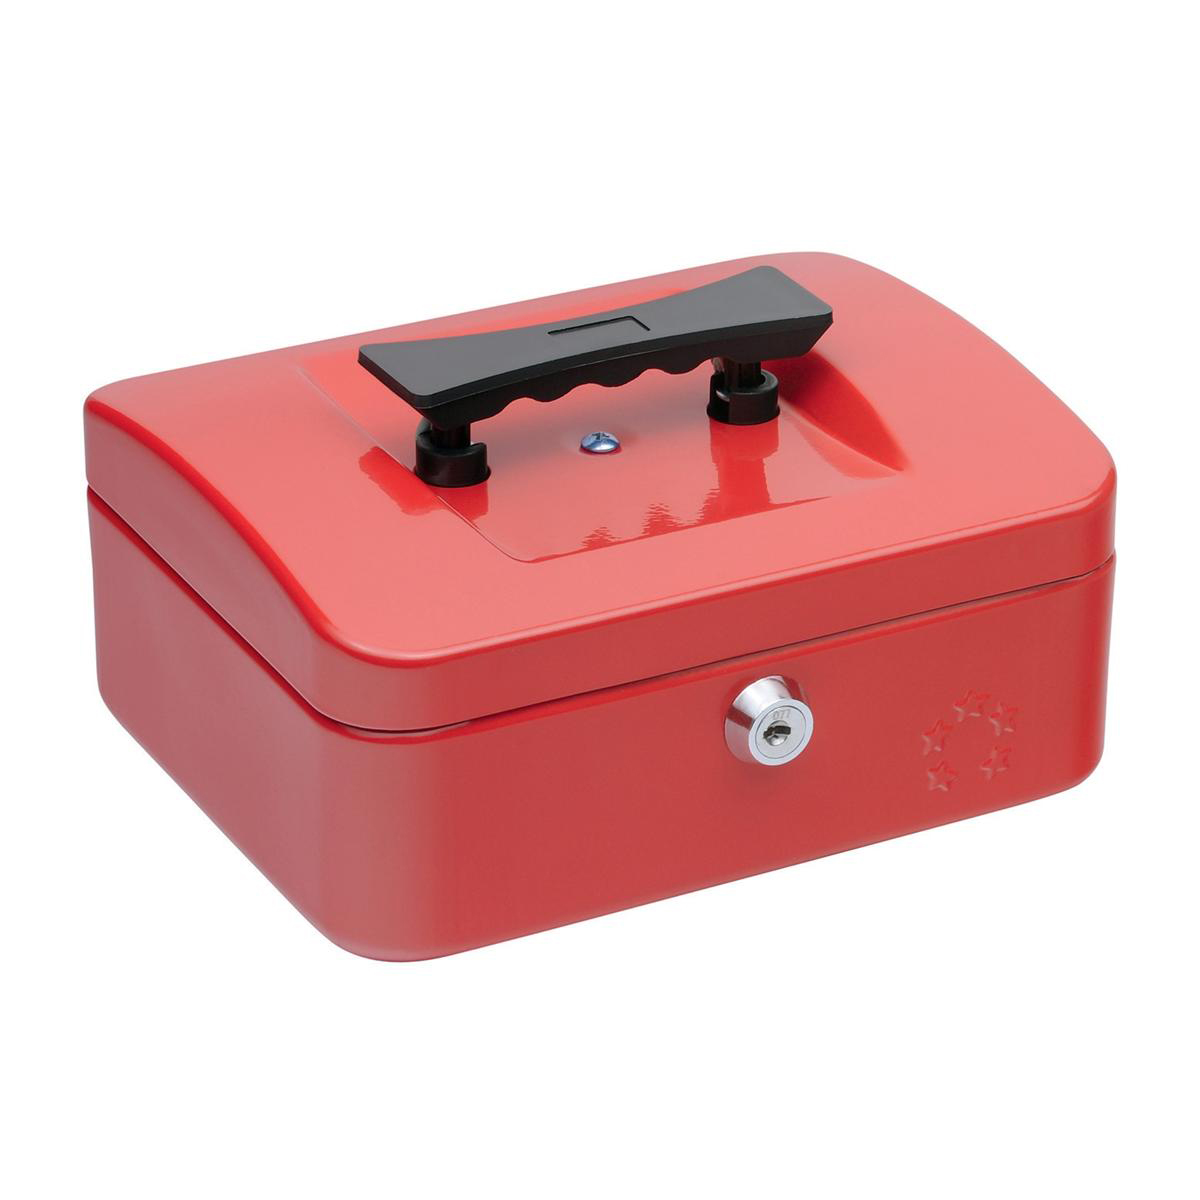 Cash or ticket boxes 5 Star Facilities Cash Box with 5-compartment Tray Steel Spring Lock 8 Inch W200xD160xH70mm Red